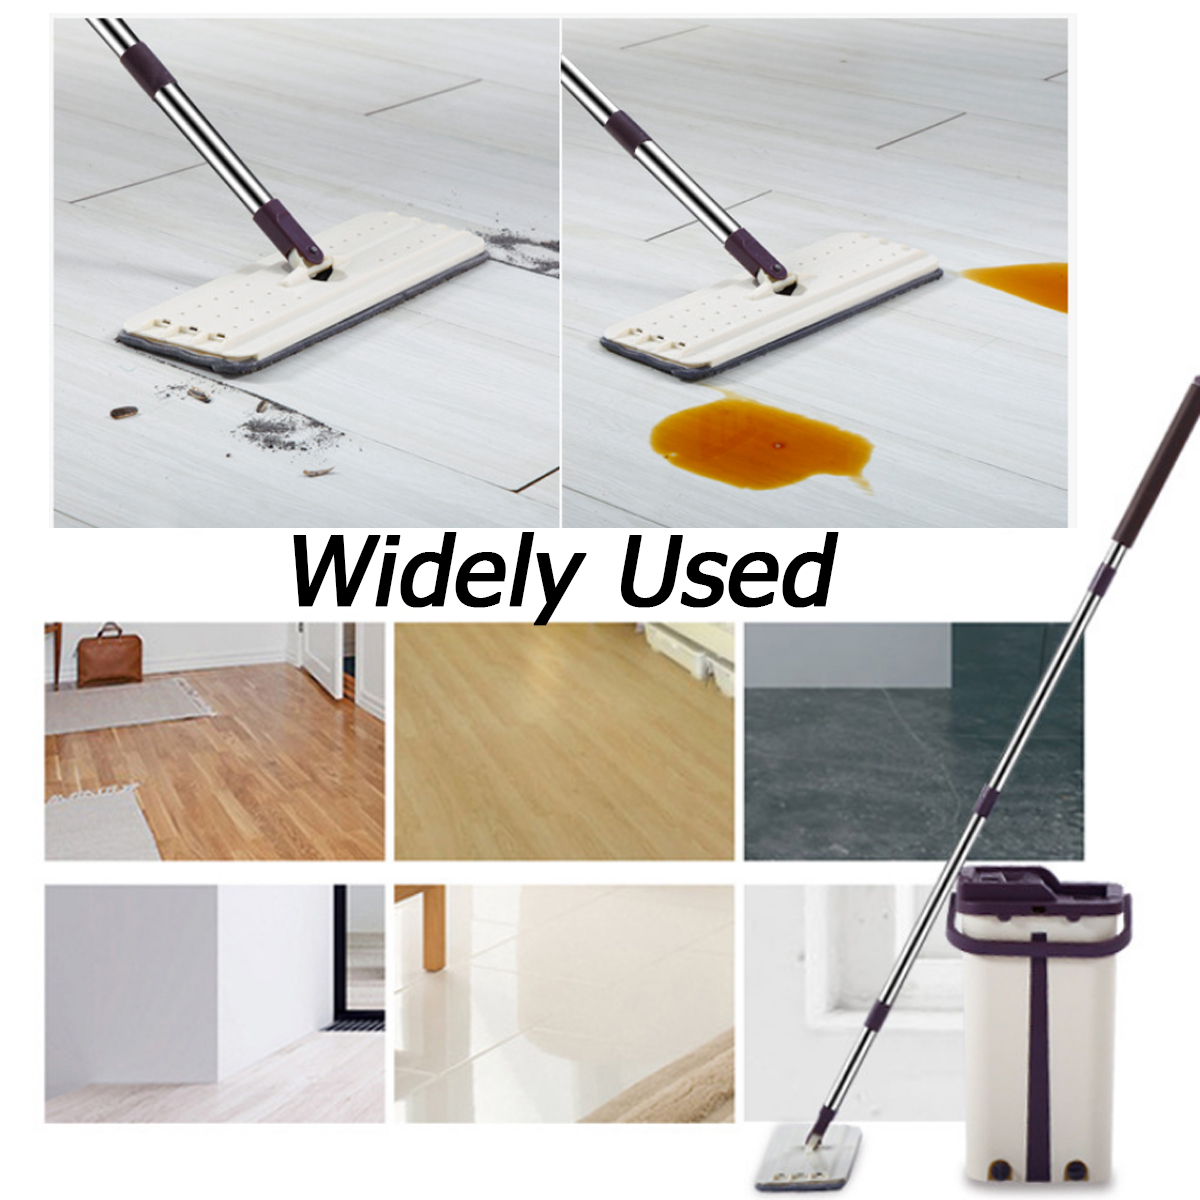 Hand-Free Spin Mop for Automatic Wet or Dry Mopping in 360-Degree Rotation Structure Design 4